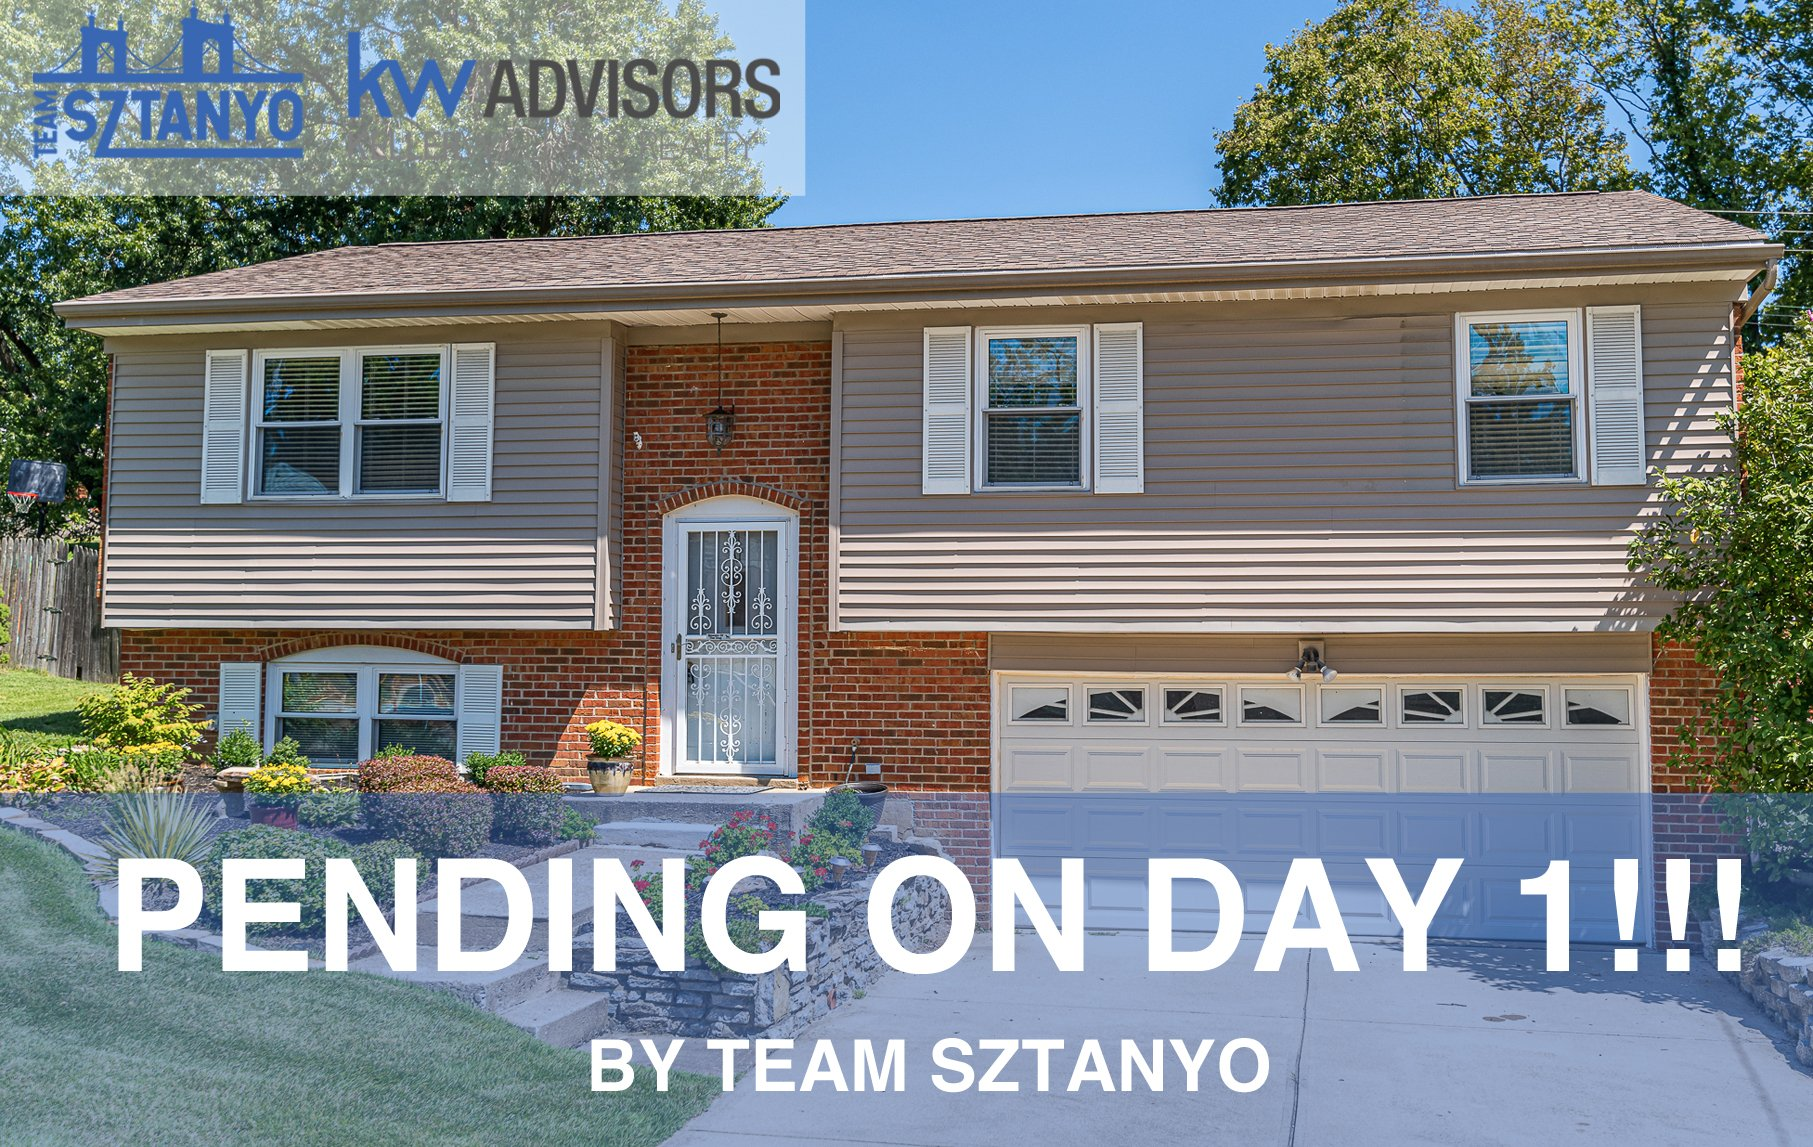 pending house for sale in elranger ky - team sztanyo keller williams realty